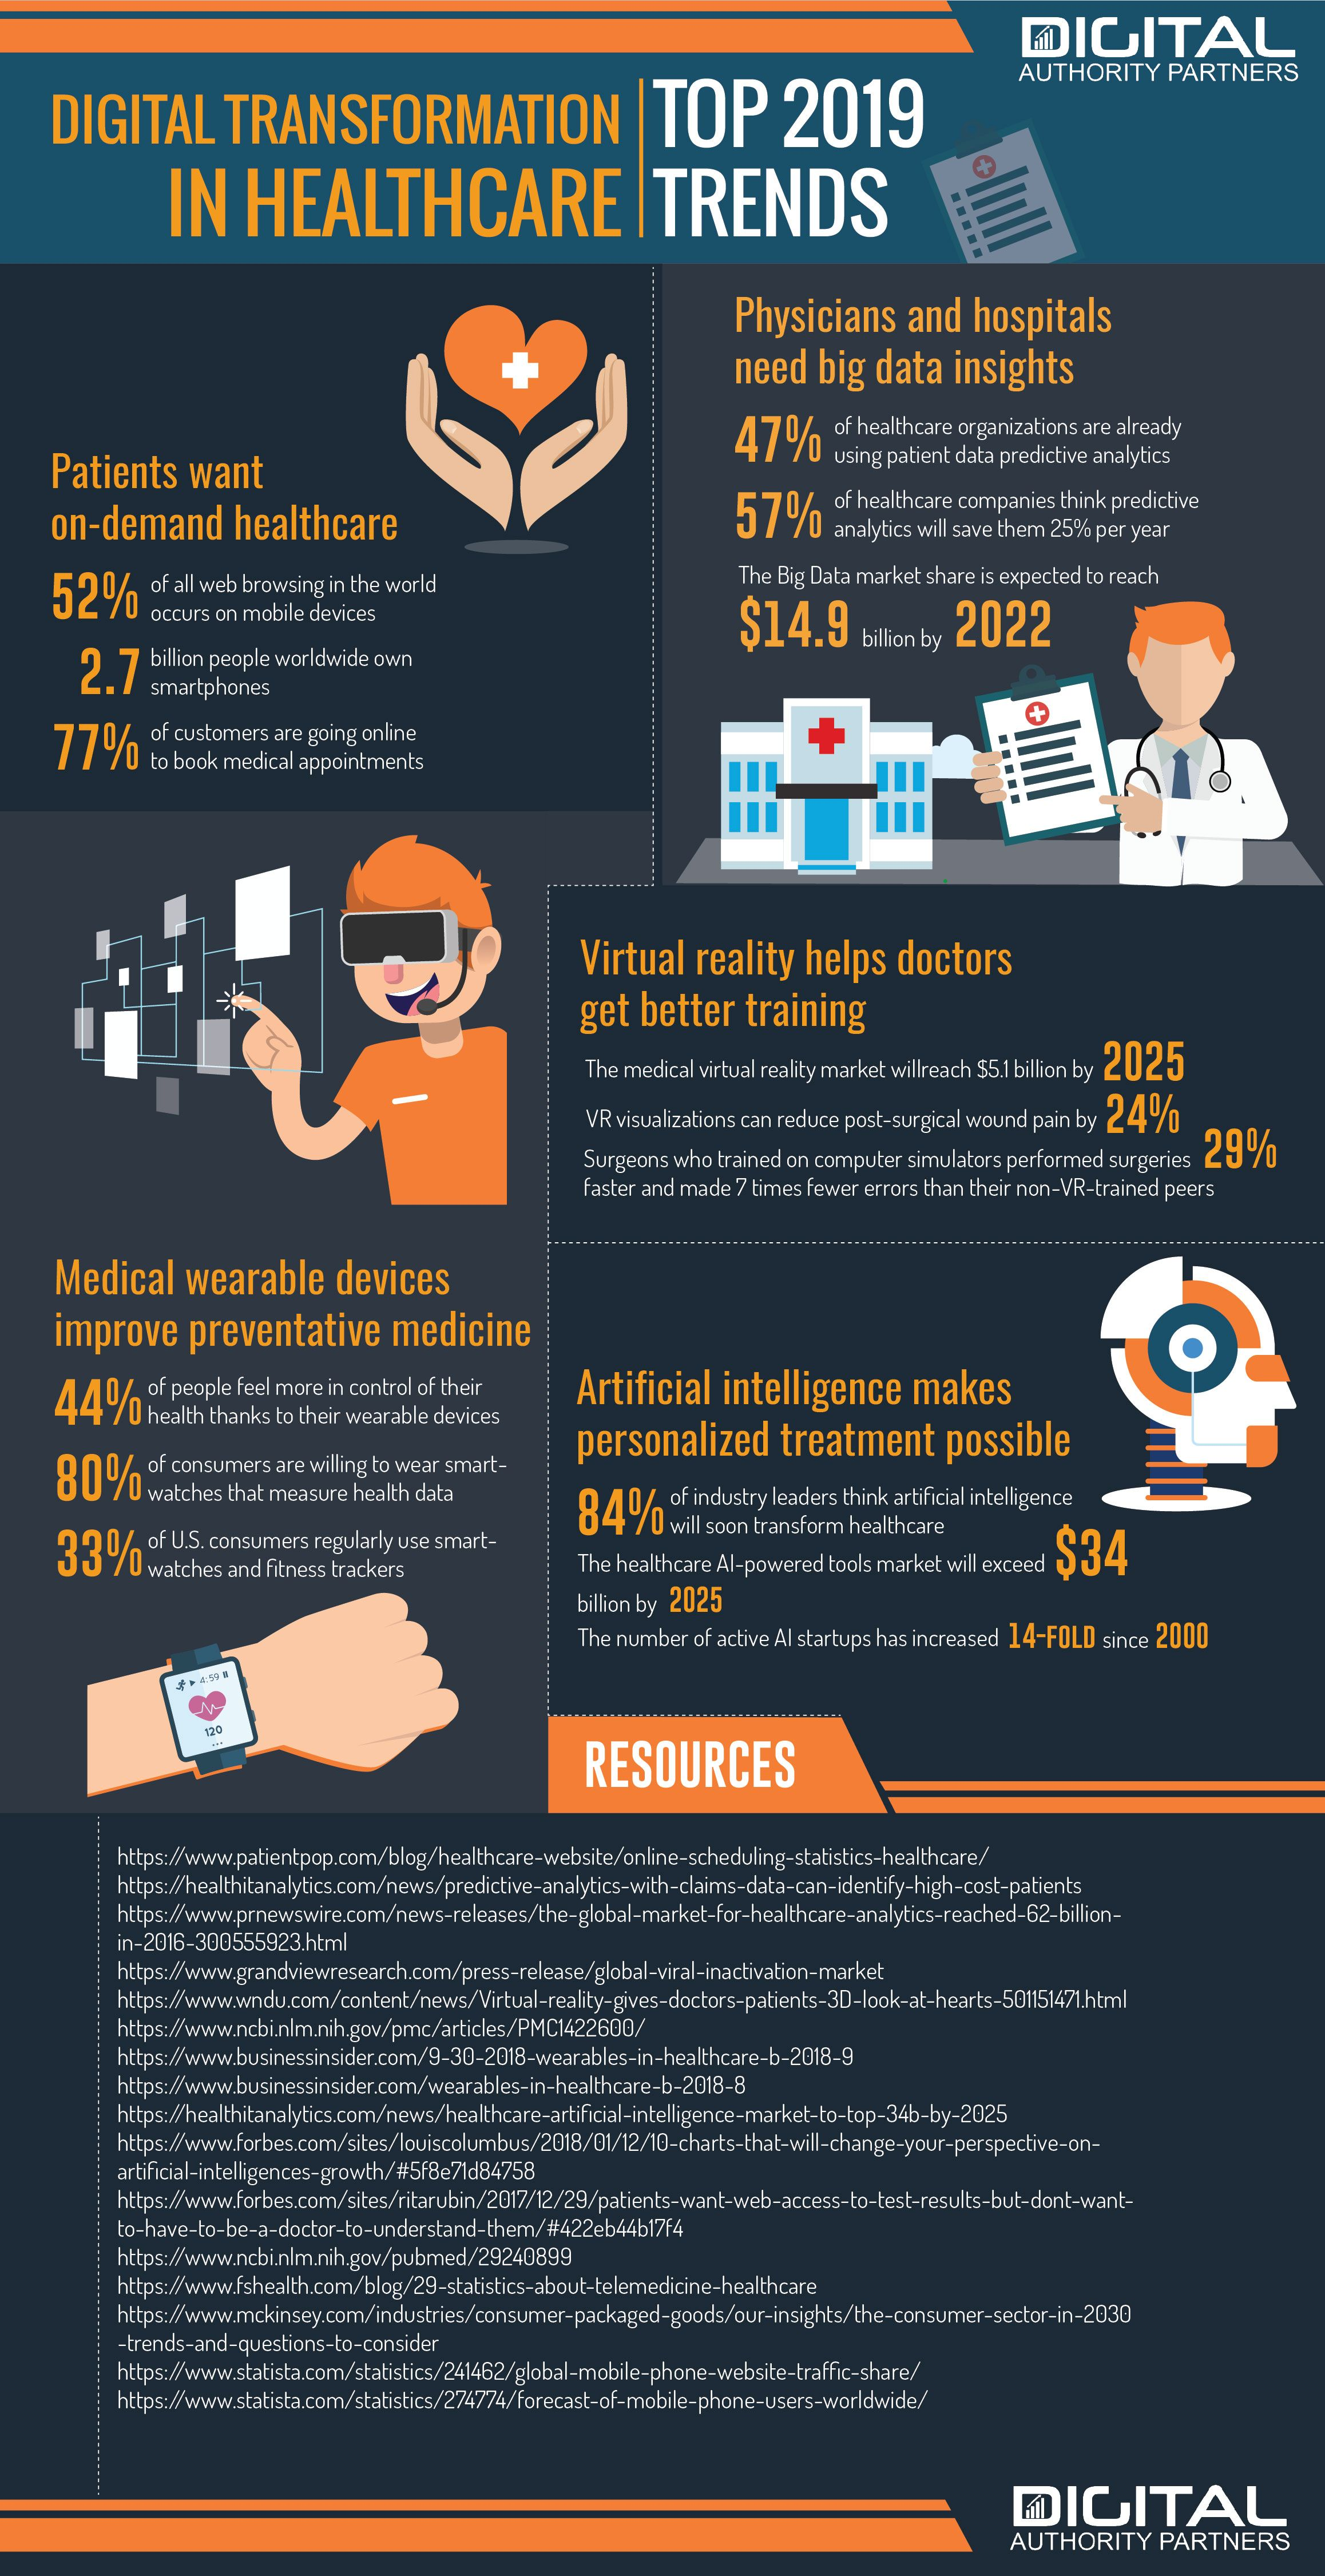 Digital Transformation in Healthcare. Infographic